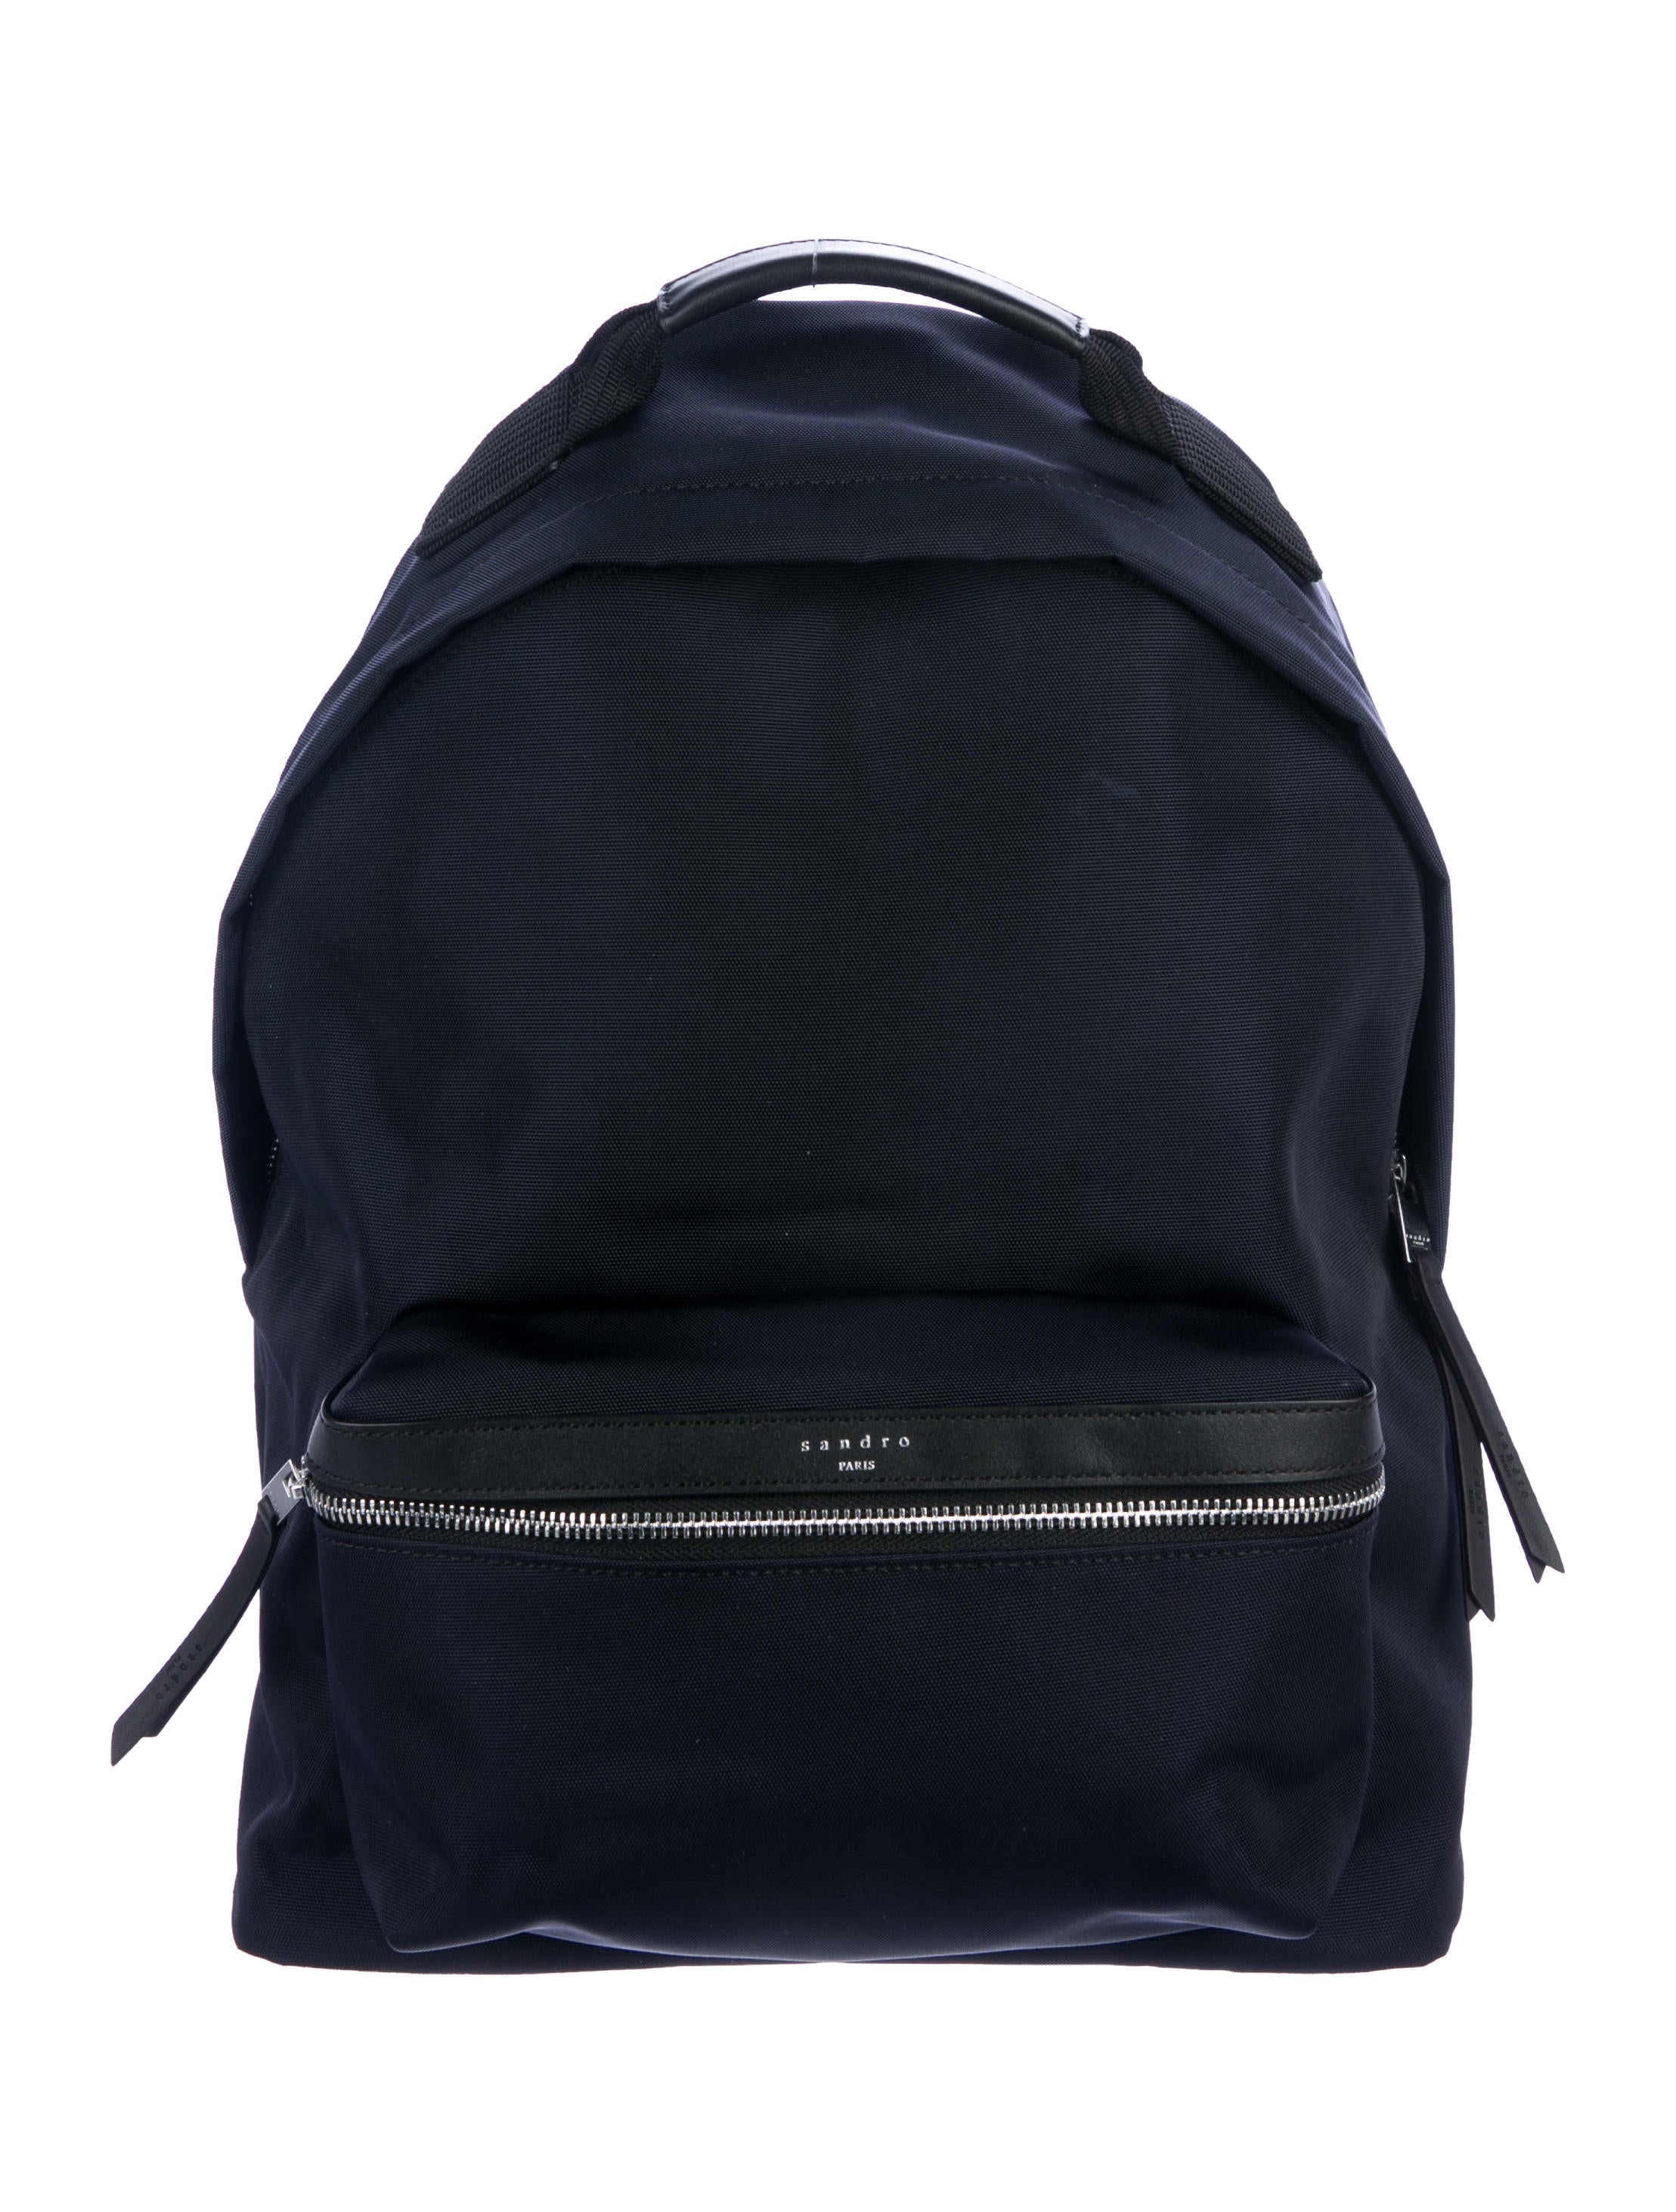 17c8788bf0 Sandro Leather-Trimmed Canvas Backpack w  Tags - Handbags - WS239363 ...